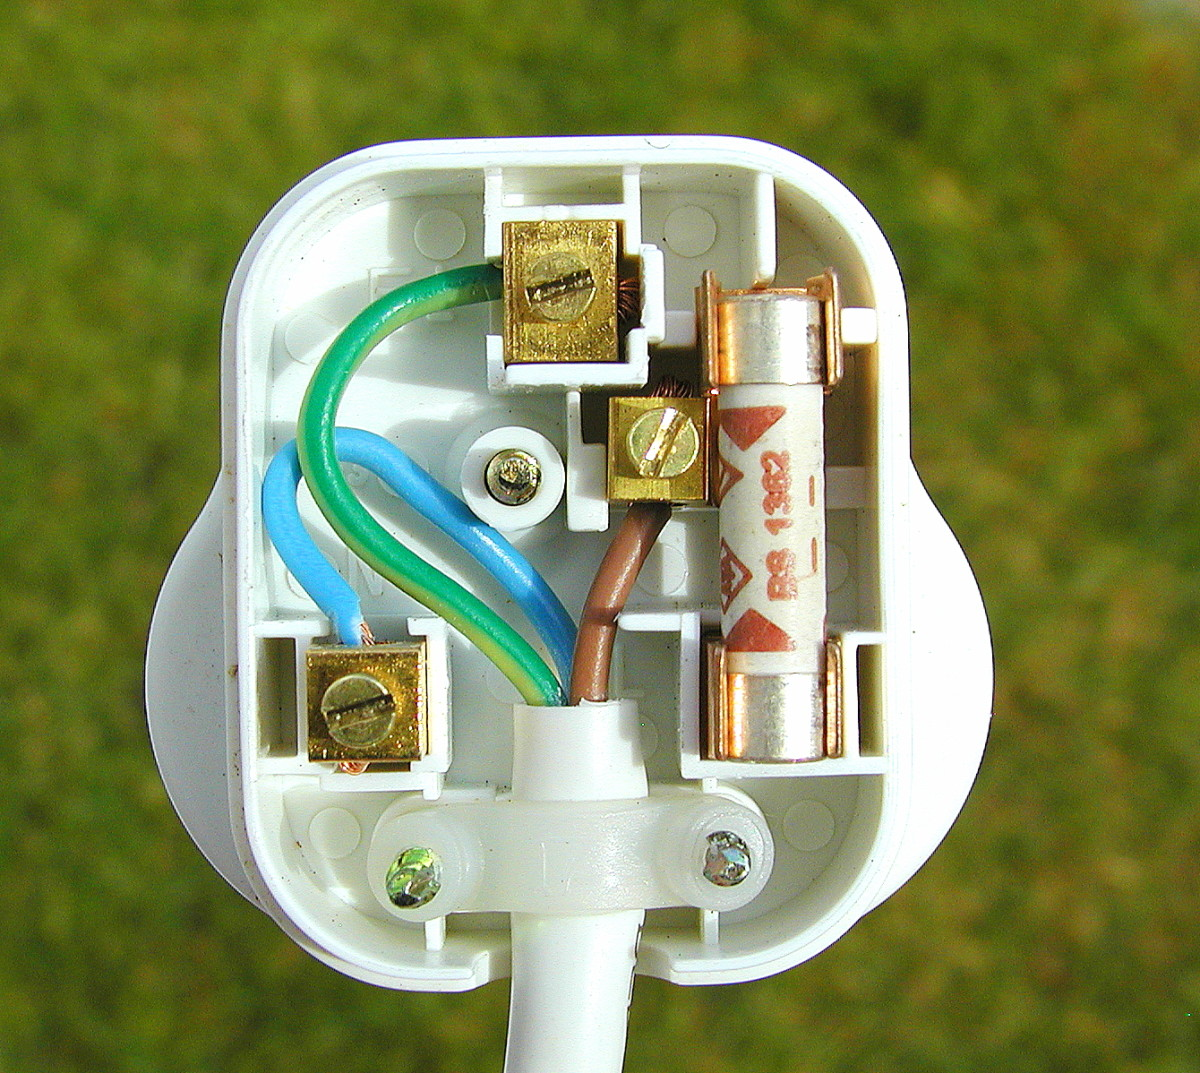 How to wire a plug. This is a UK style, BS1363 plug with integral 13 amp fuse.